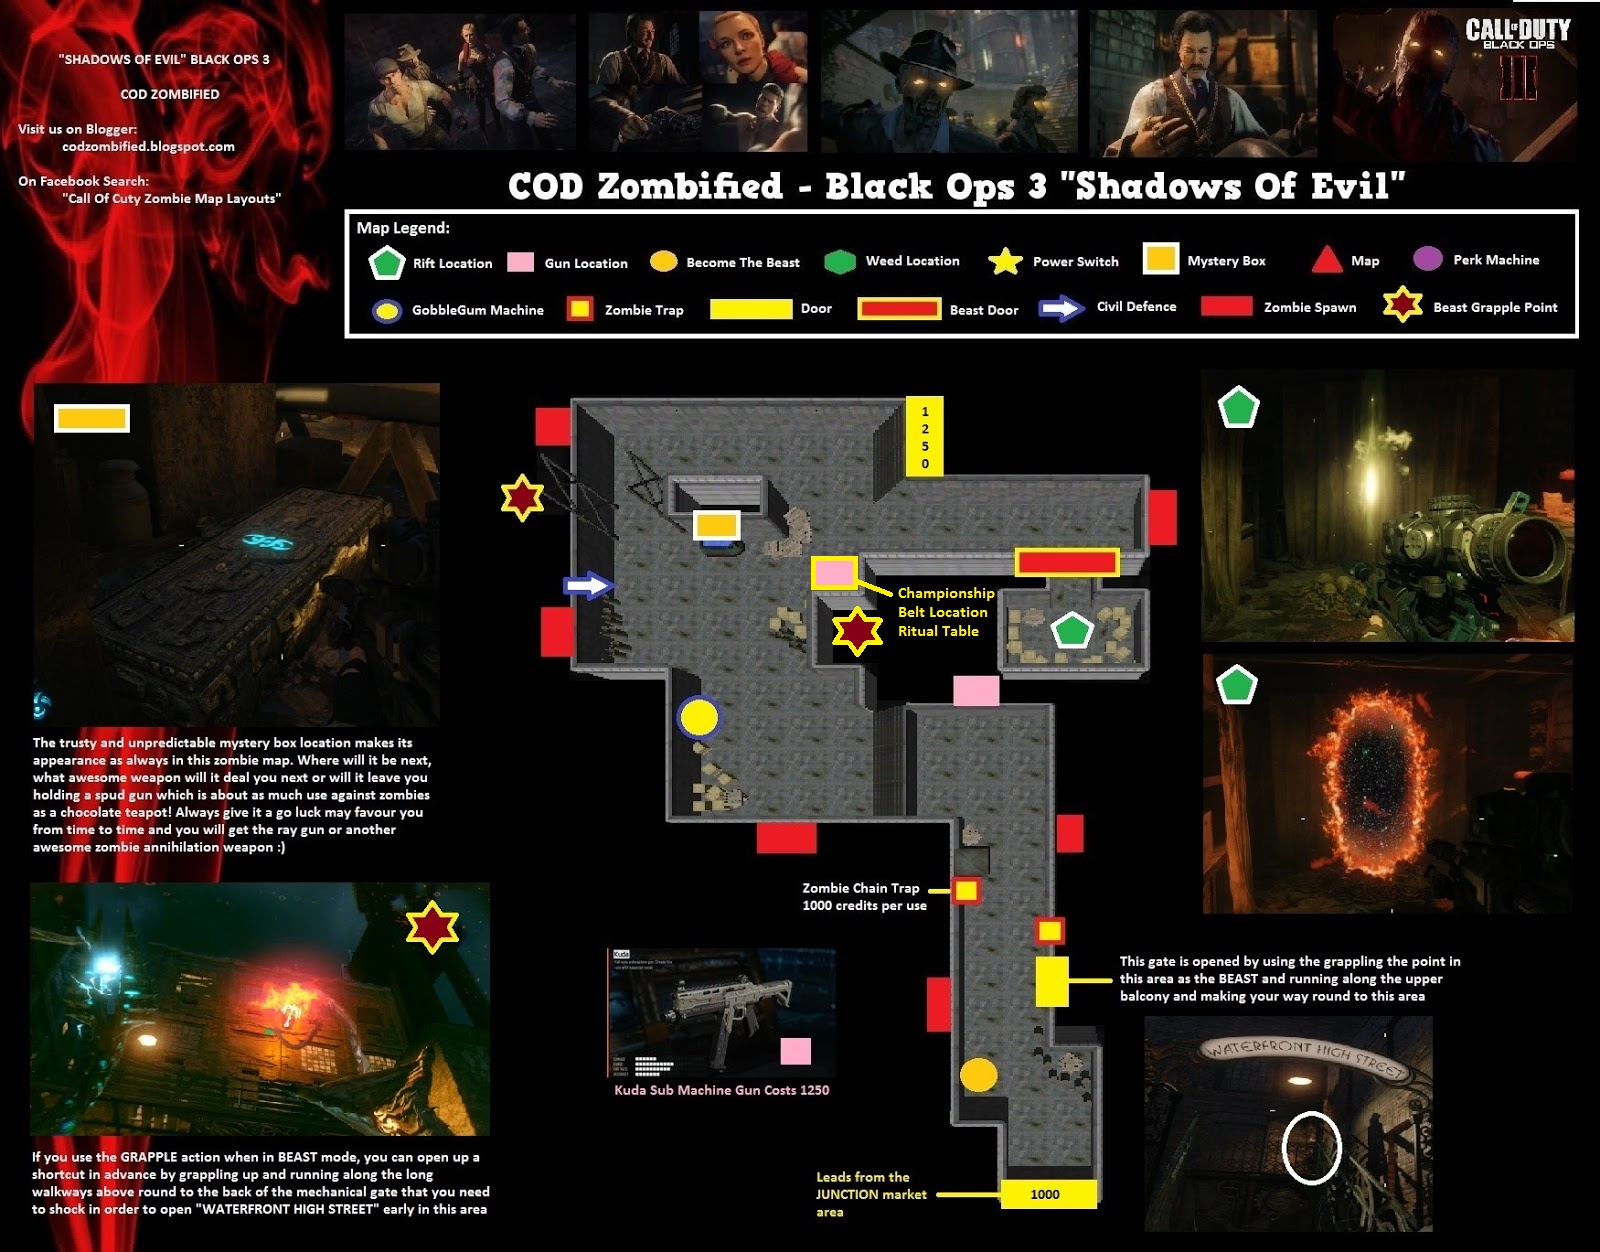 Zombified - Call Of Duty Zombie Map Layouts, Secrets, Easter ...